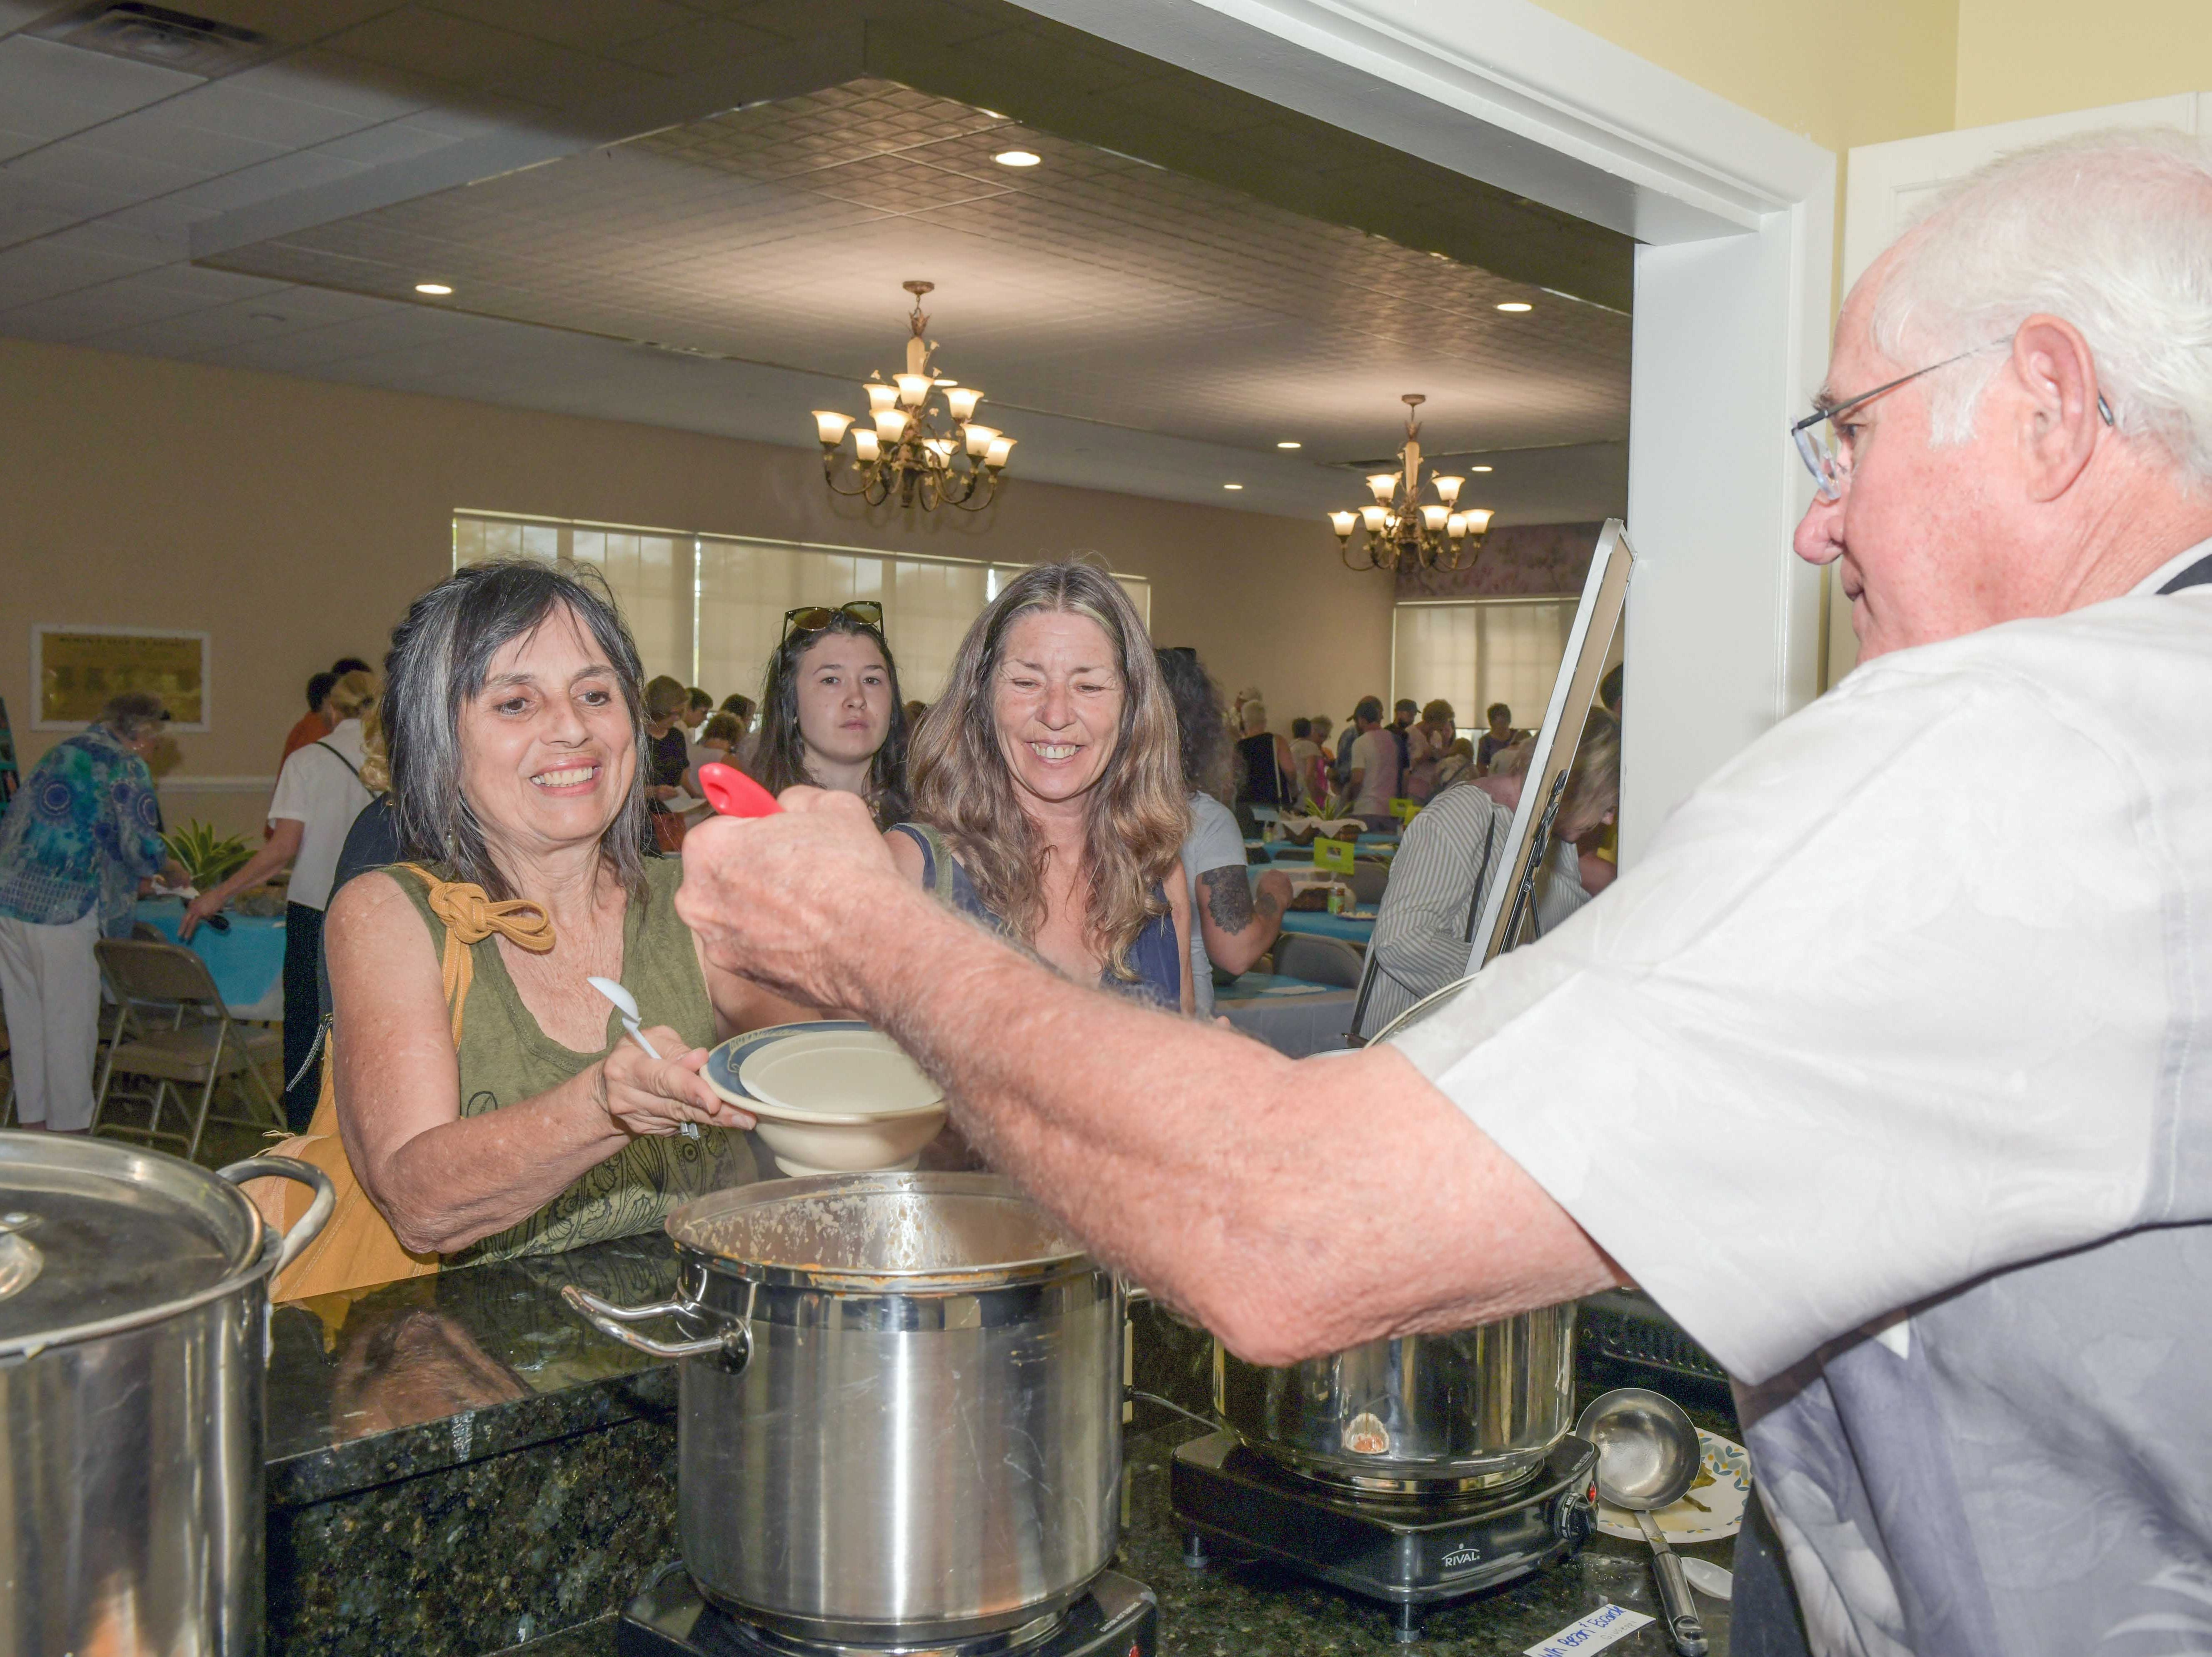 Charly Hill, left, and Pamela Ketcham are served by Craig Rich at the 13th annual Lundin Kudo Empty Bowls Project at the Woman's Club of Stuart.